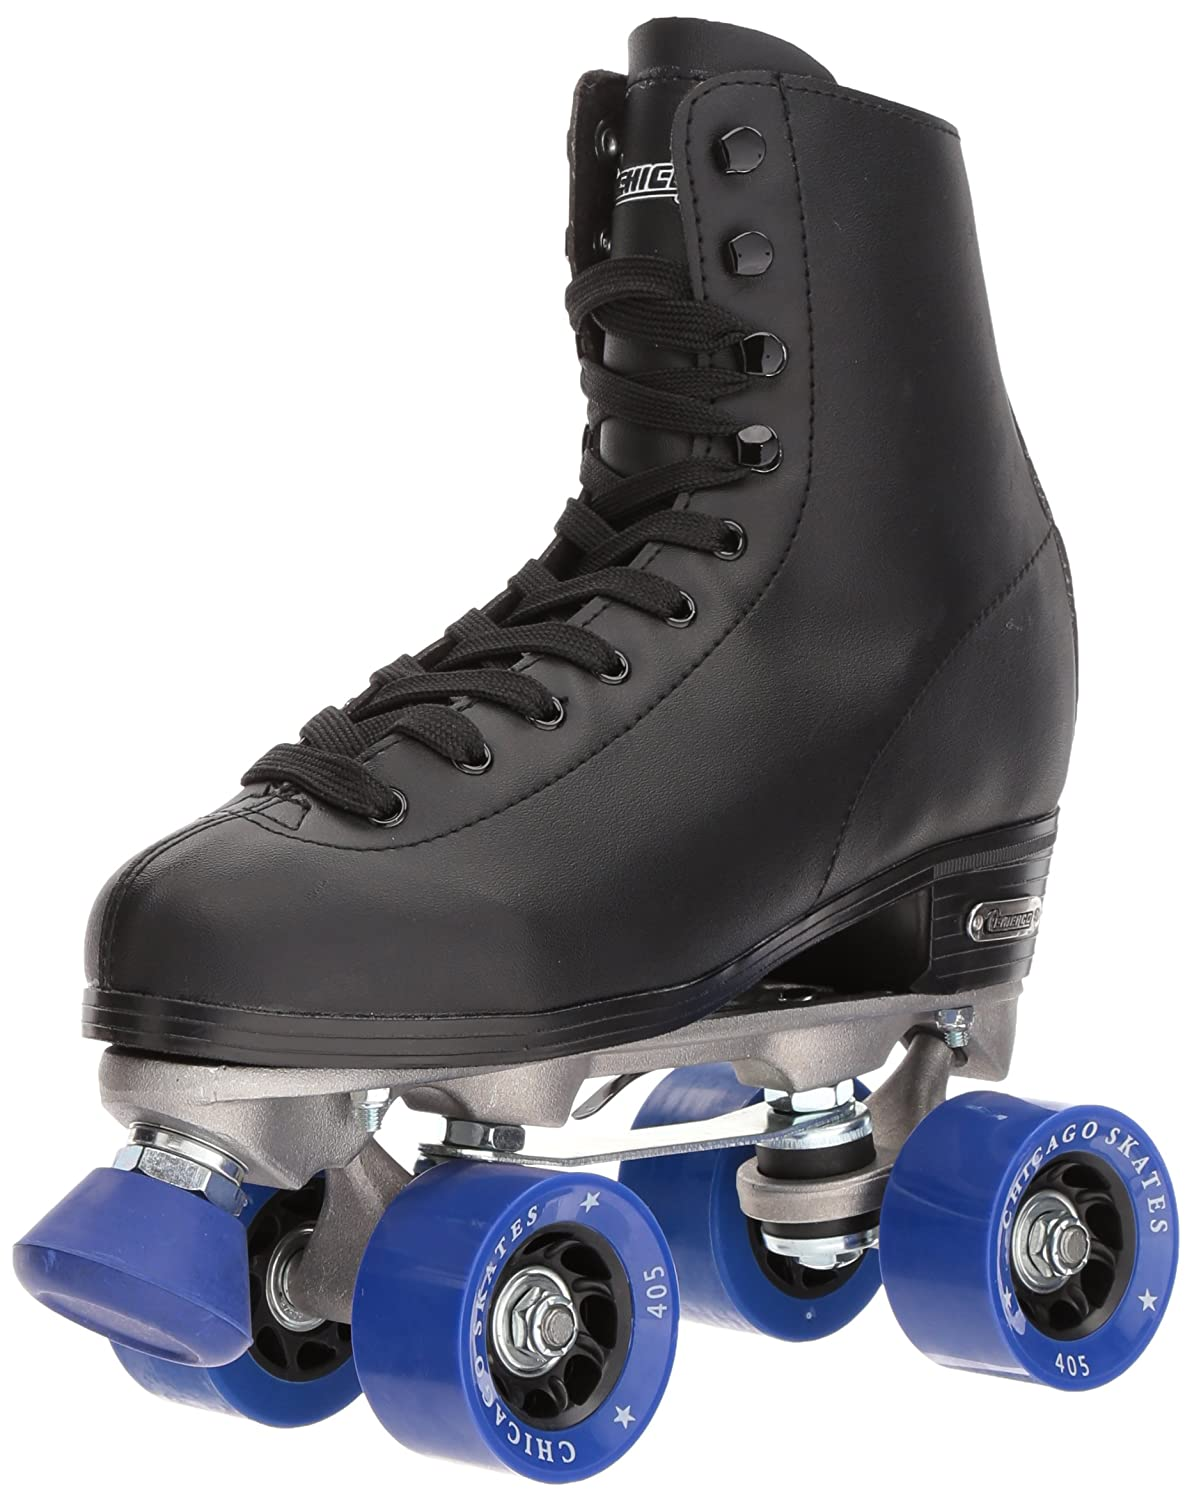 Chicago Men's Roller Rink Roller Skates